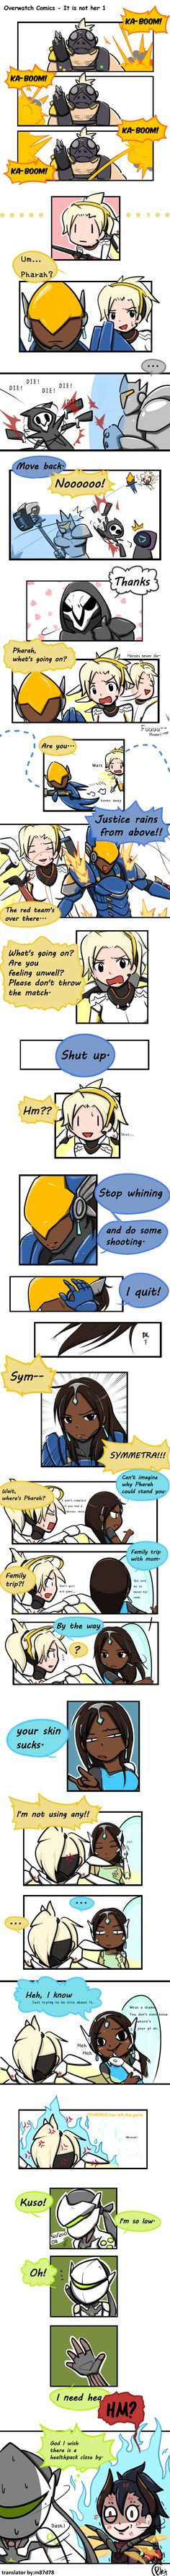 Overwatch Comics - It is not her 1 #comics #mercy #overwatch #pharah #symmetra #pharmercy #fanartwatch